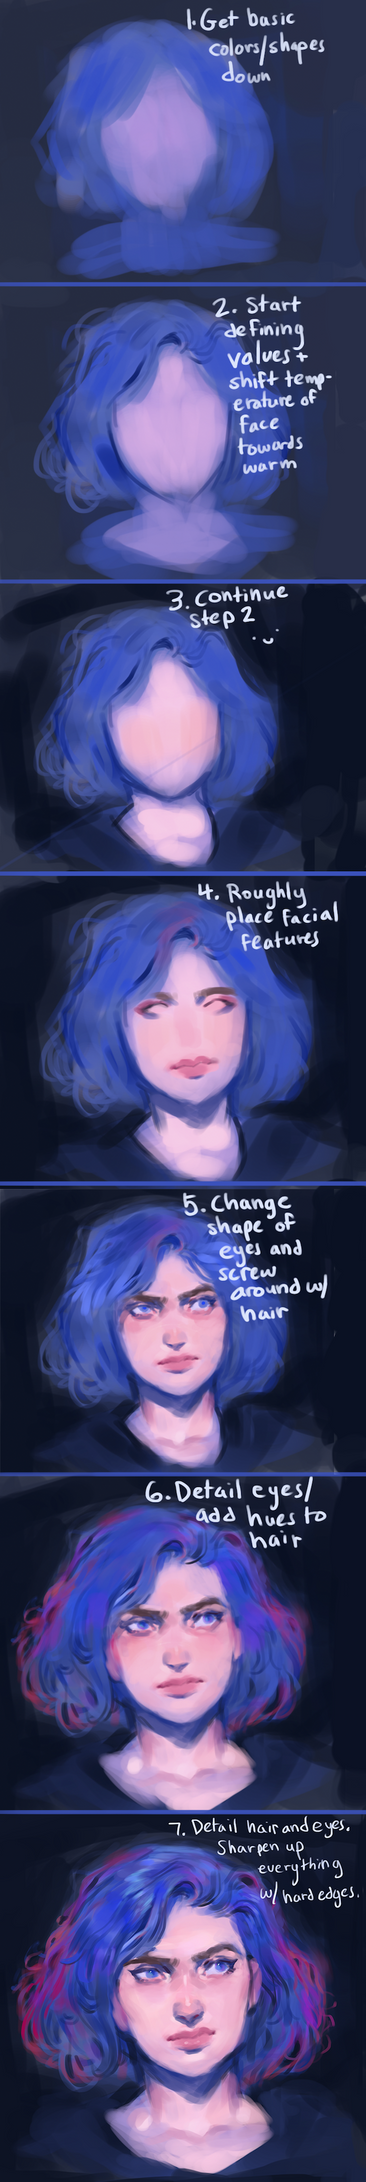 Process for that other piece by Vetyr